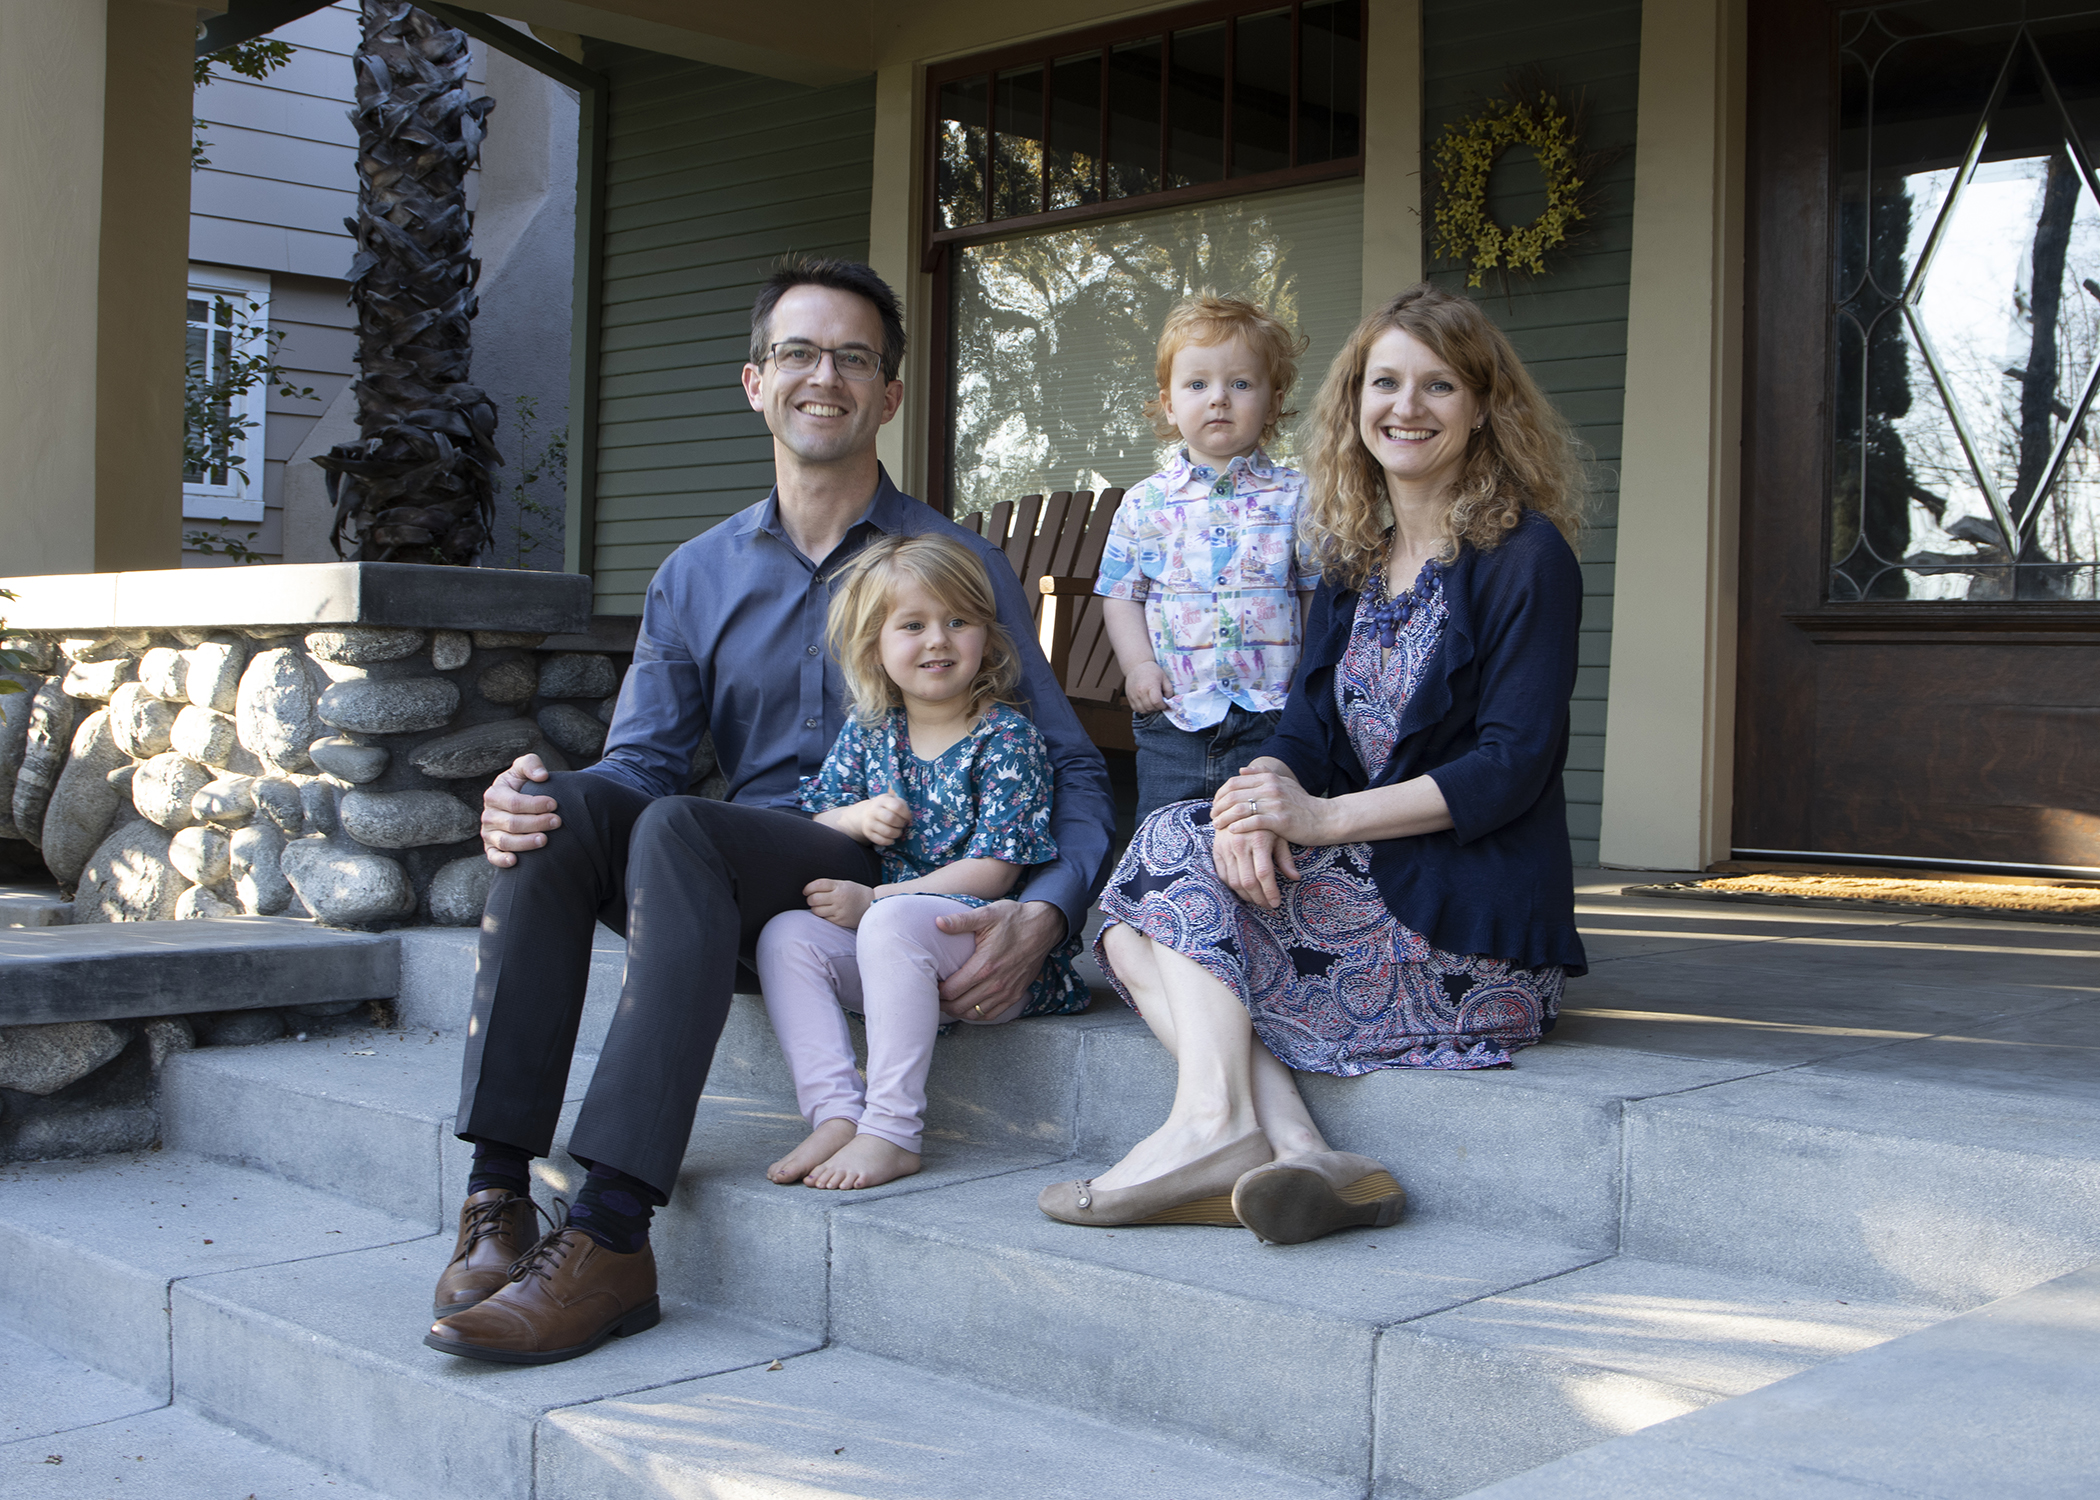 Caltech chemist and 2000 Texas A&M chemistry graduate Dr. Thomas F. Miller III poses on his front porch with his family, daughter Charlotte, son Frankie and wife Nicola